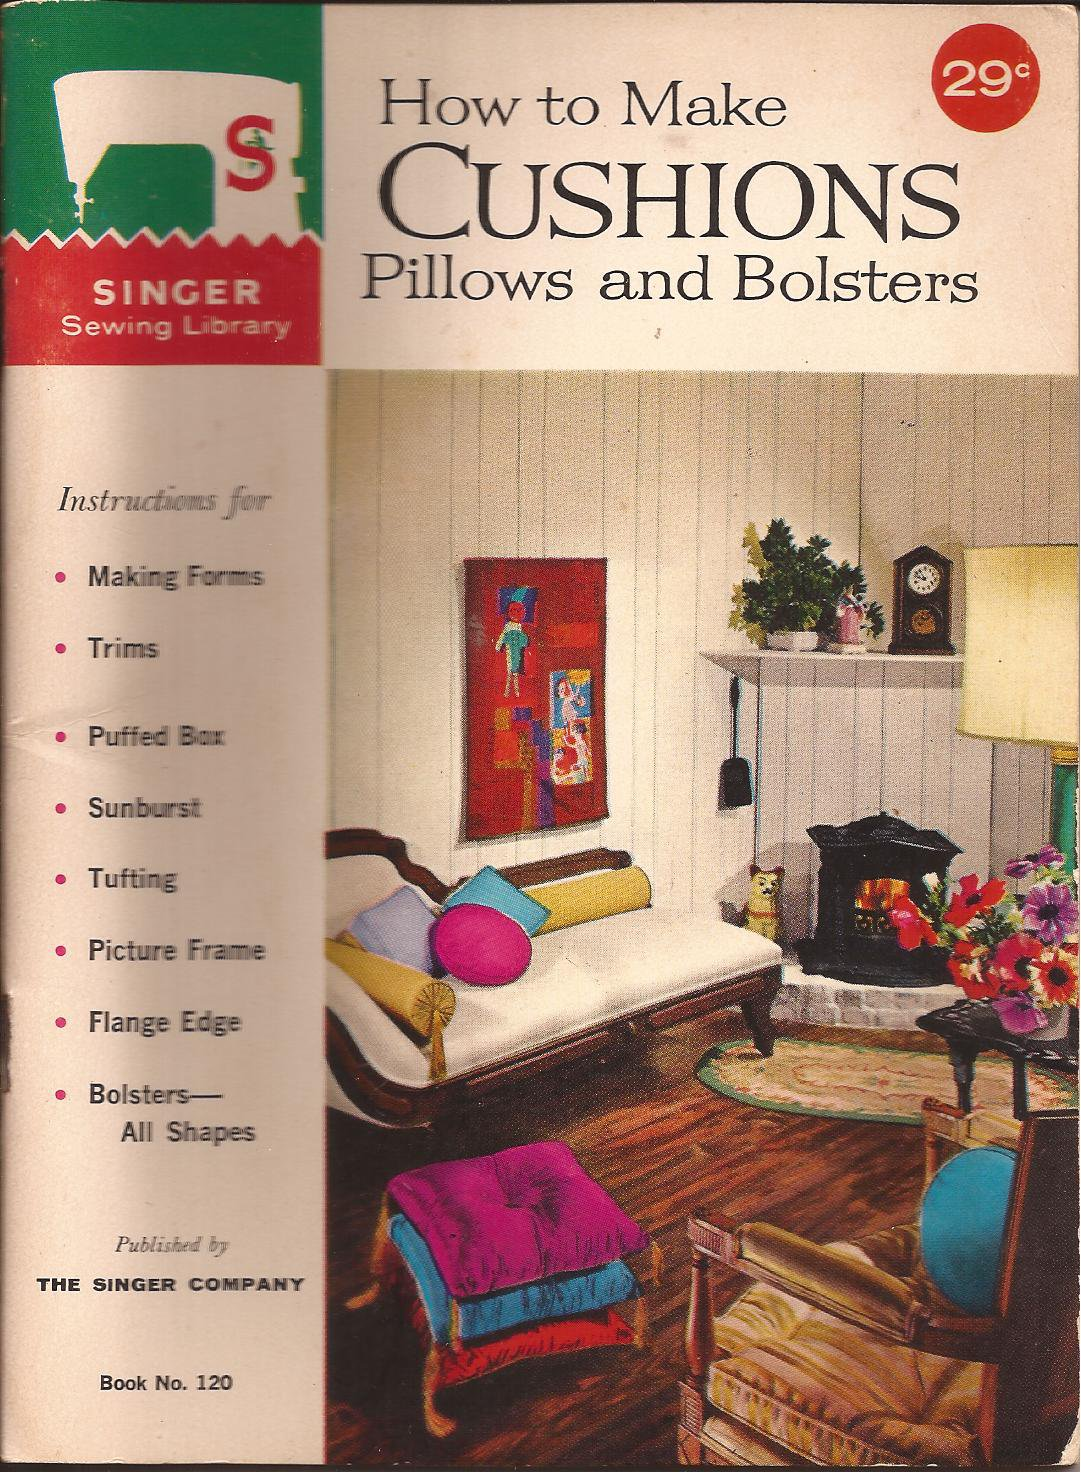 Vintage (1962) Singer Sewing Library How to Make Cushions Booklet 120